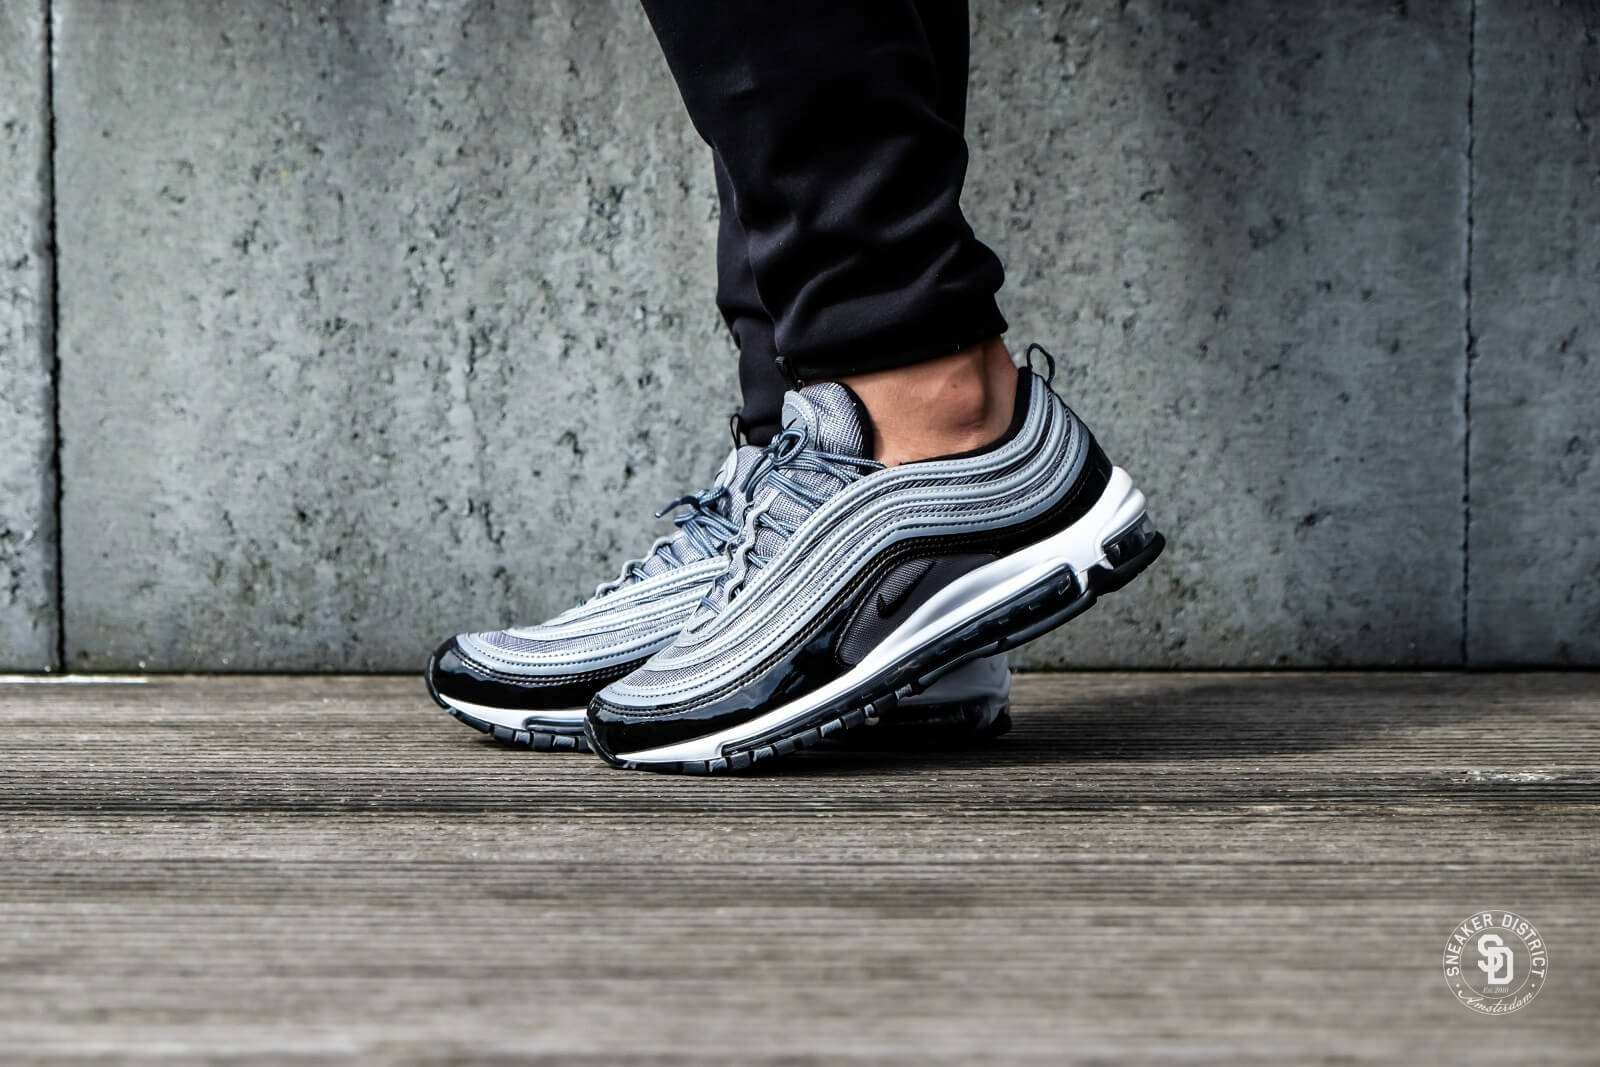 Nike Air Max 97 Cool Grey Black 921826 010